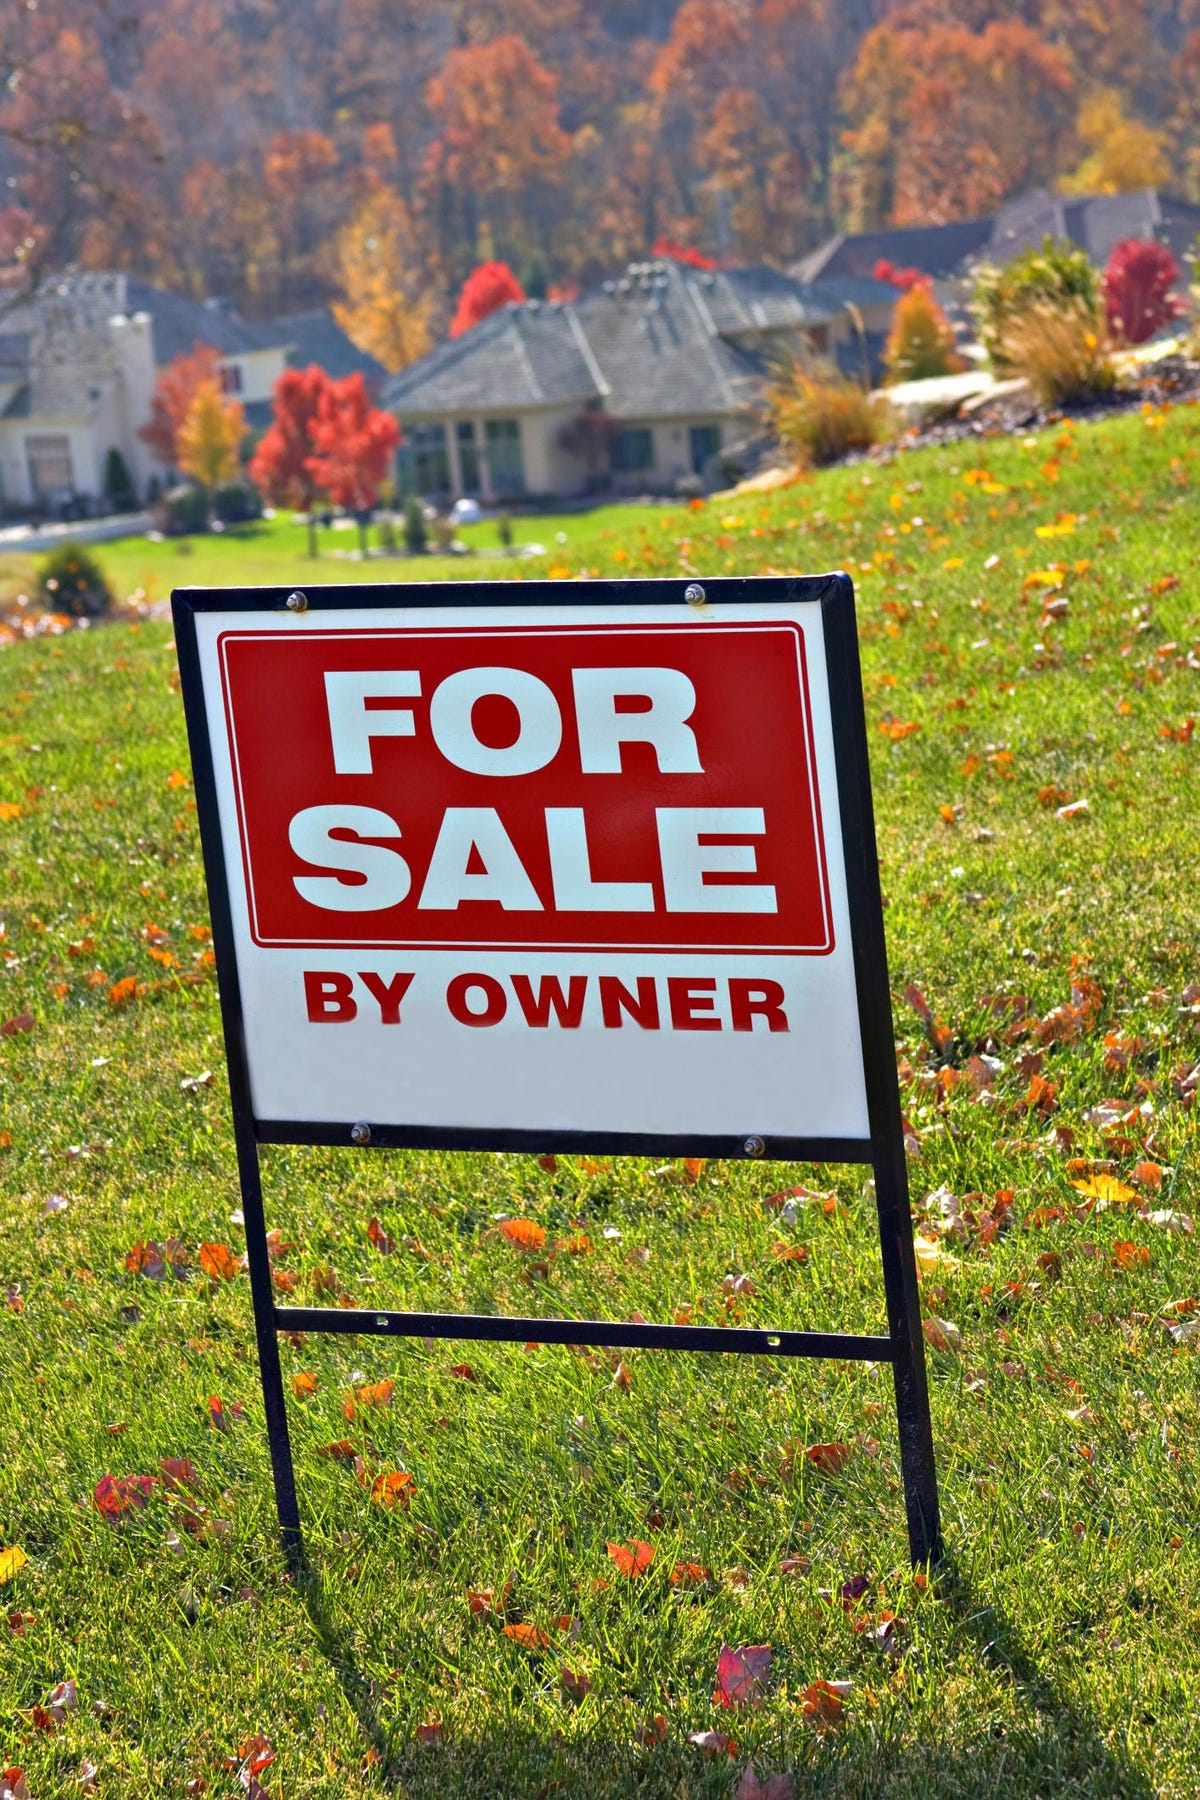 Central Jersey home sales